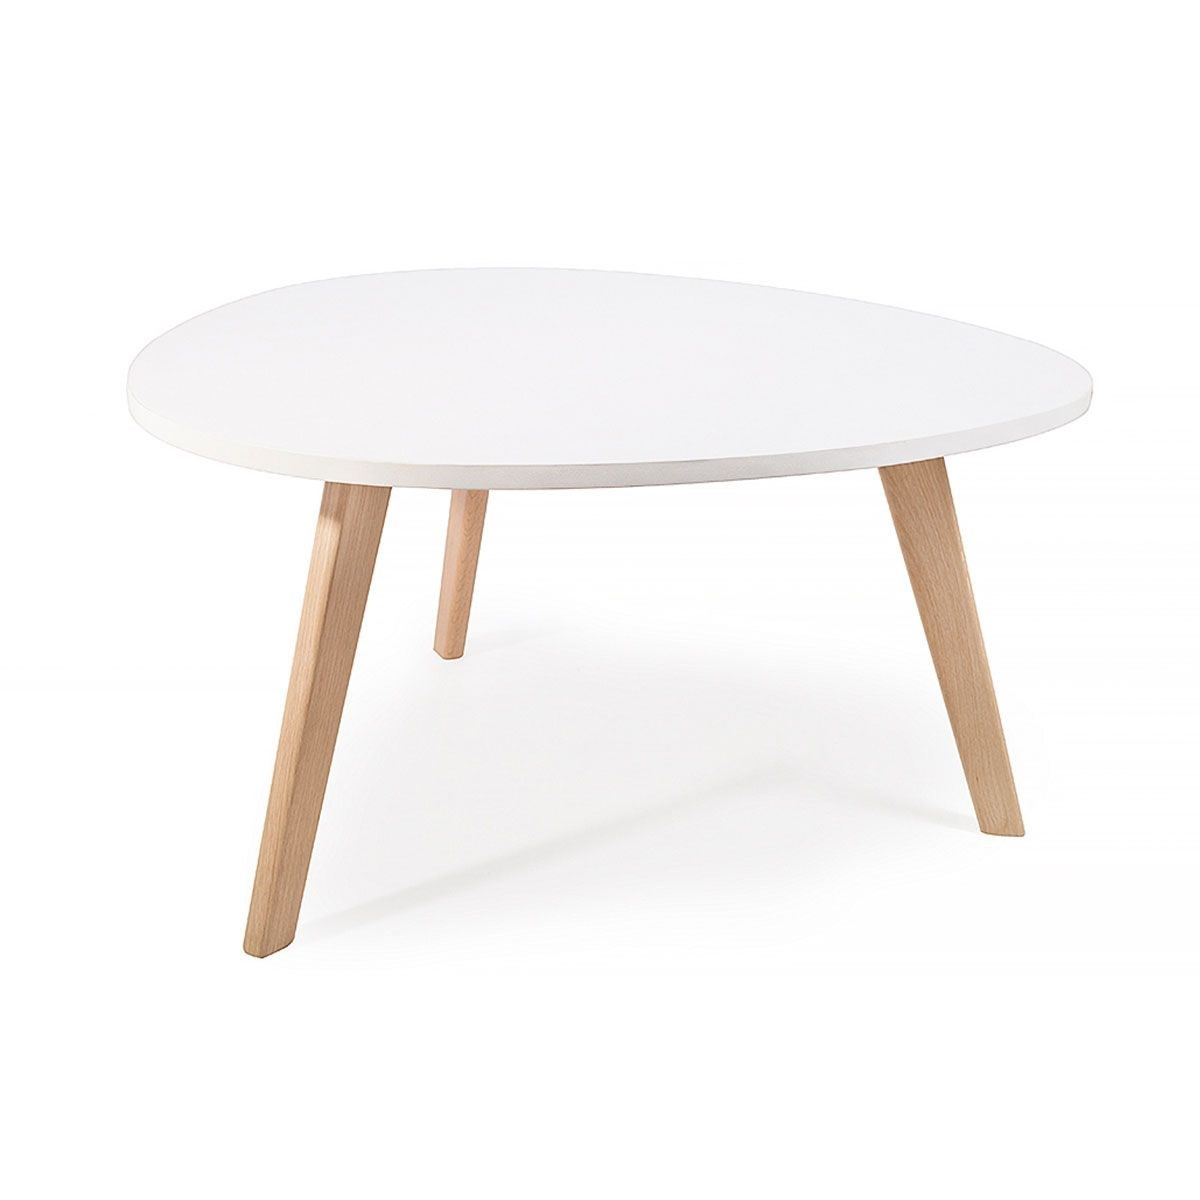 Alta table basse scandinave blanc 80x42cm nordique galet - Table basse ronde scandinave ...